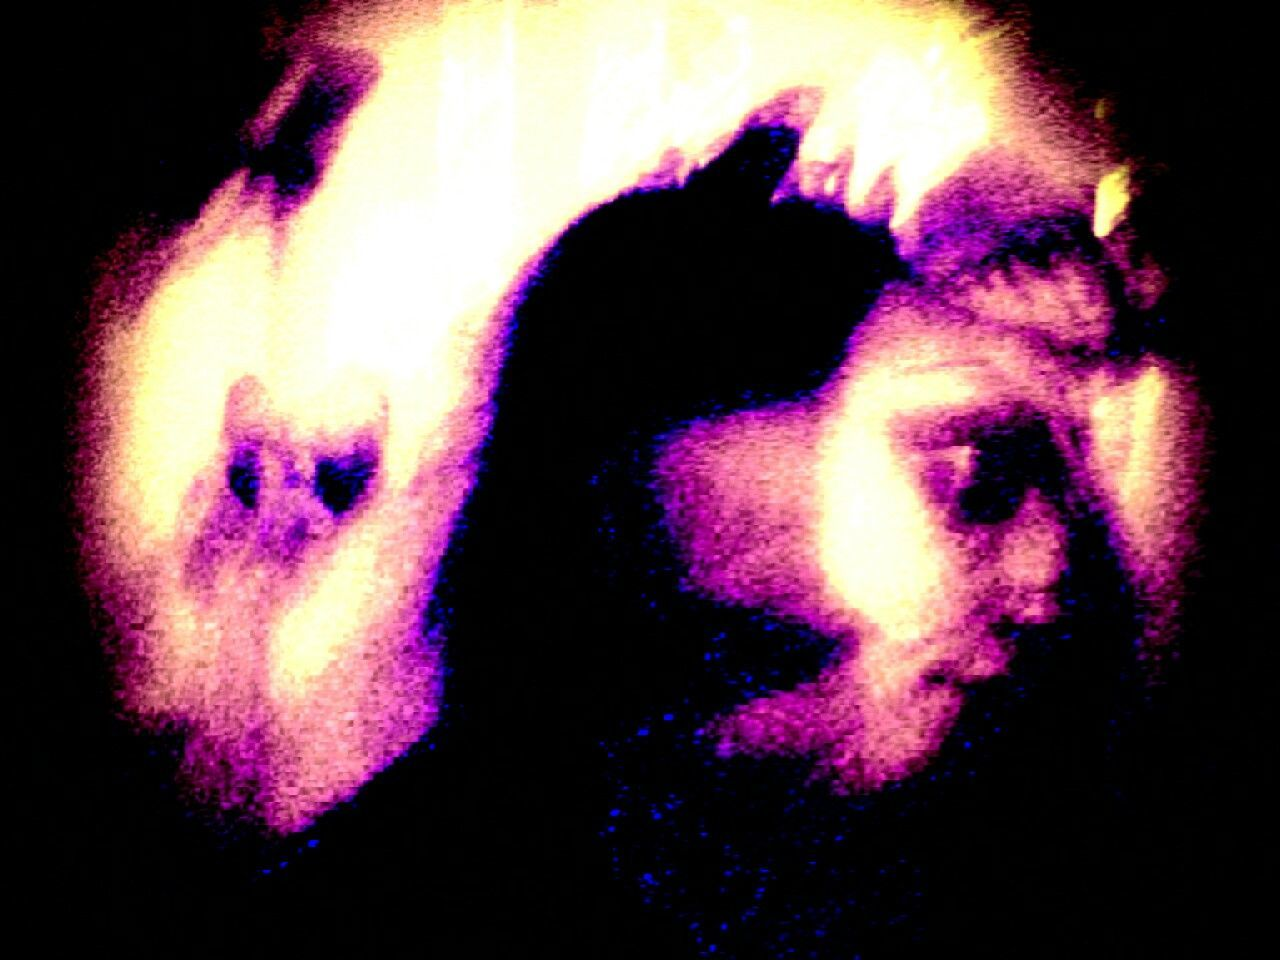 Imagination That's Me Taking Photos Enjoying Life Out Of Body Experience Leaving Body Iredesant Dream Check This Out That's Me Self Portrait Ideas Mystery Curiosity Abstract Faces Of EyeEm